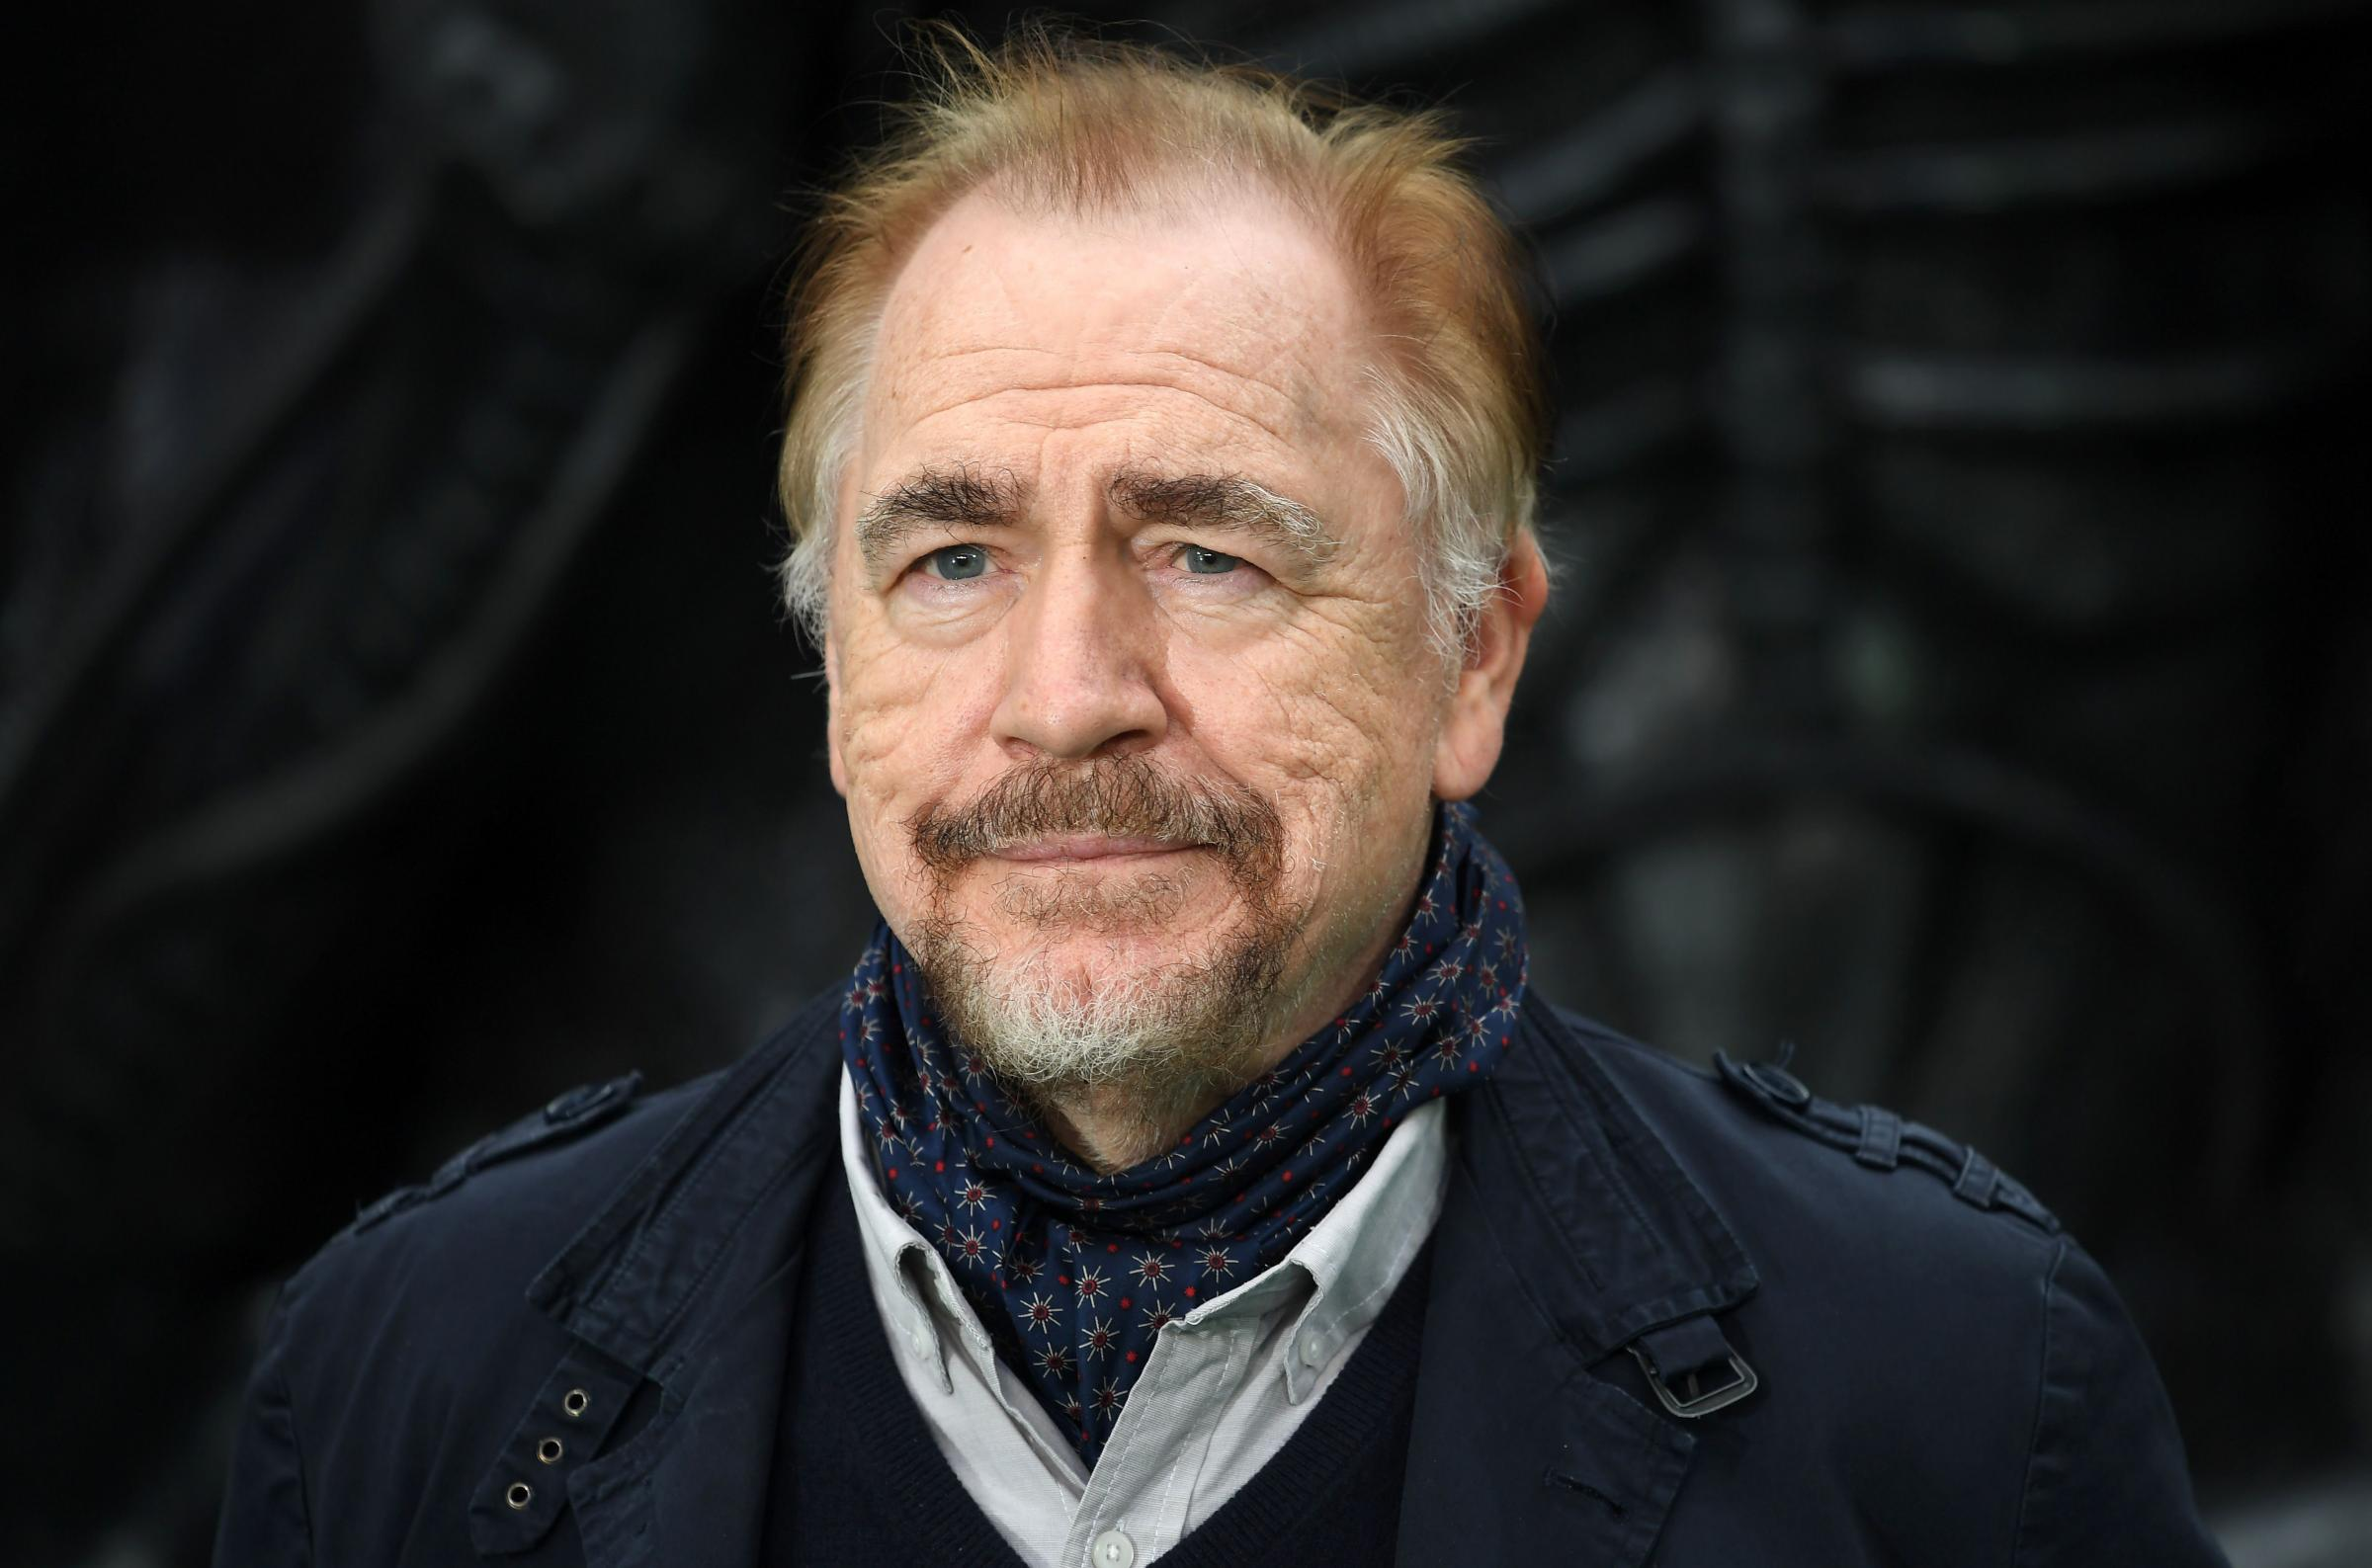 Can well-kent faces like Brian Cox help generate support for independence?